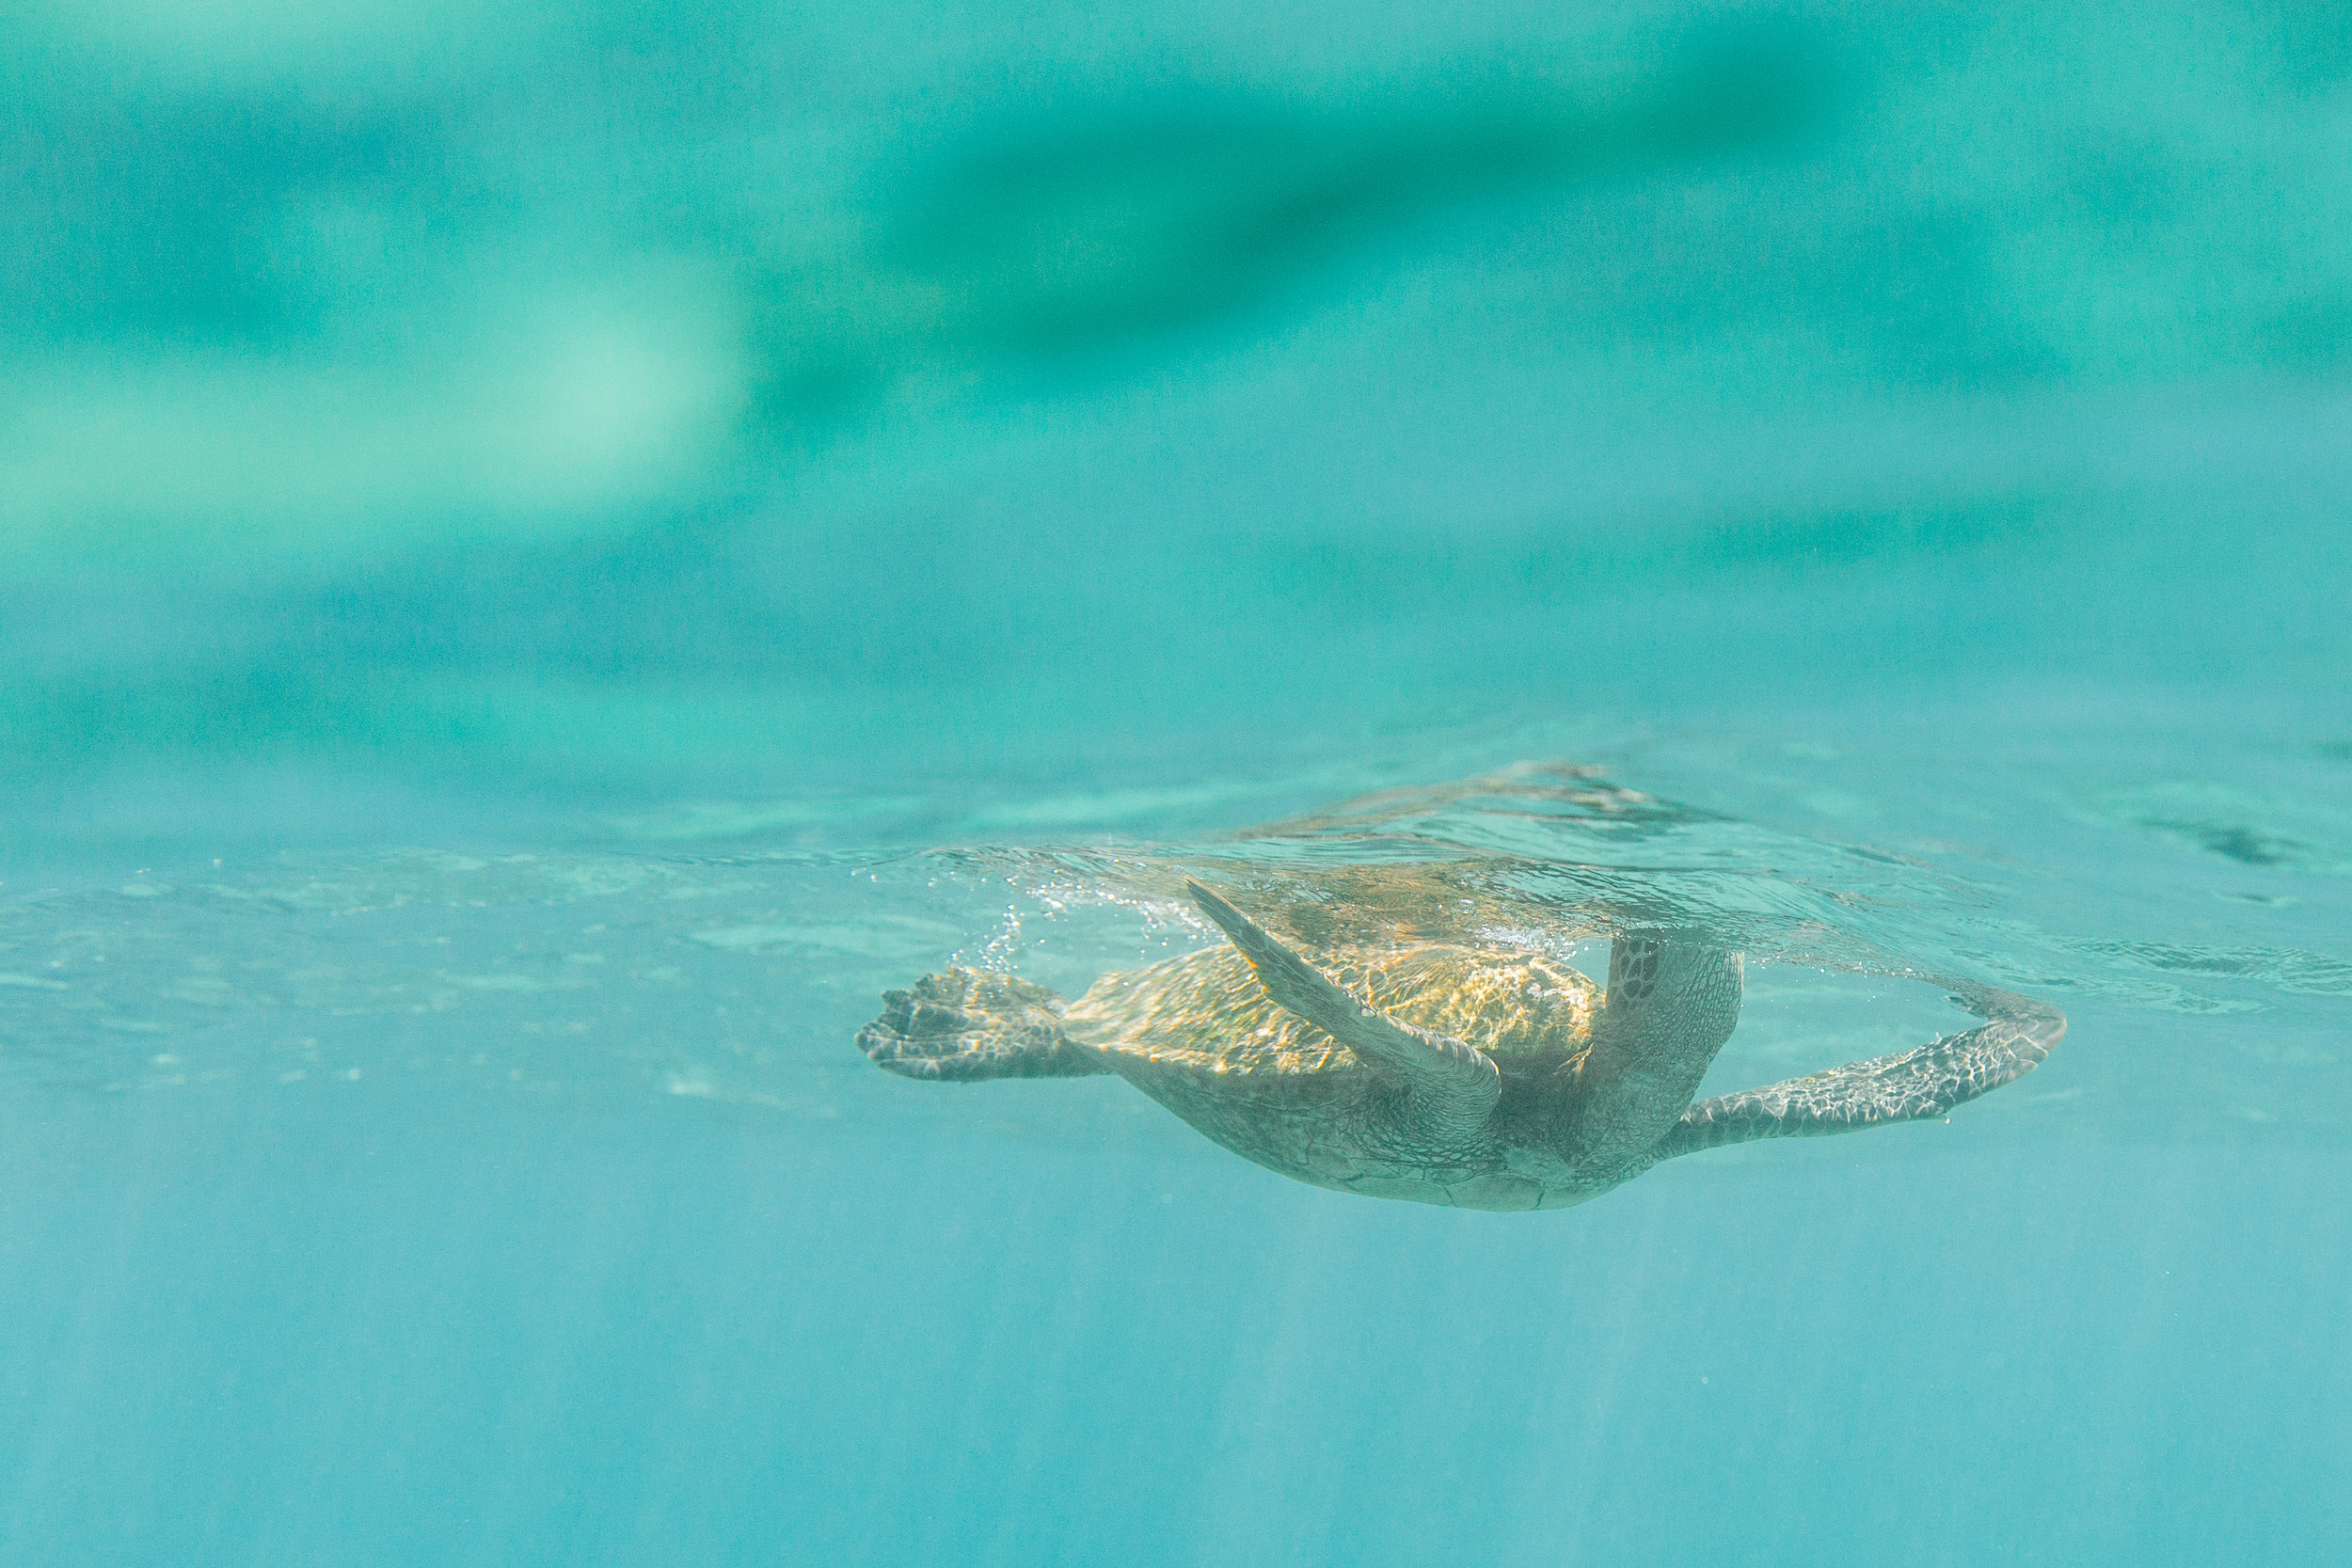 Hawaii-Kailee-DiMeglio-Photography-sea-turtle-7346.jpg